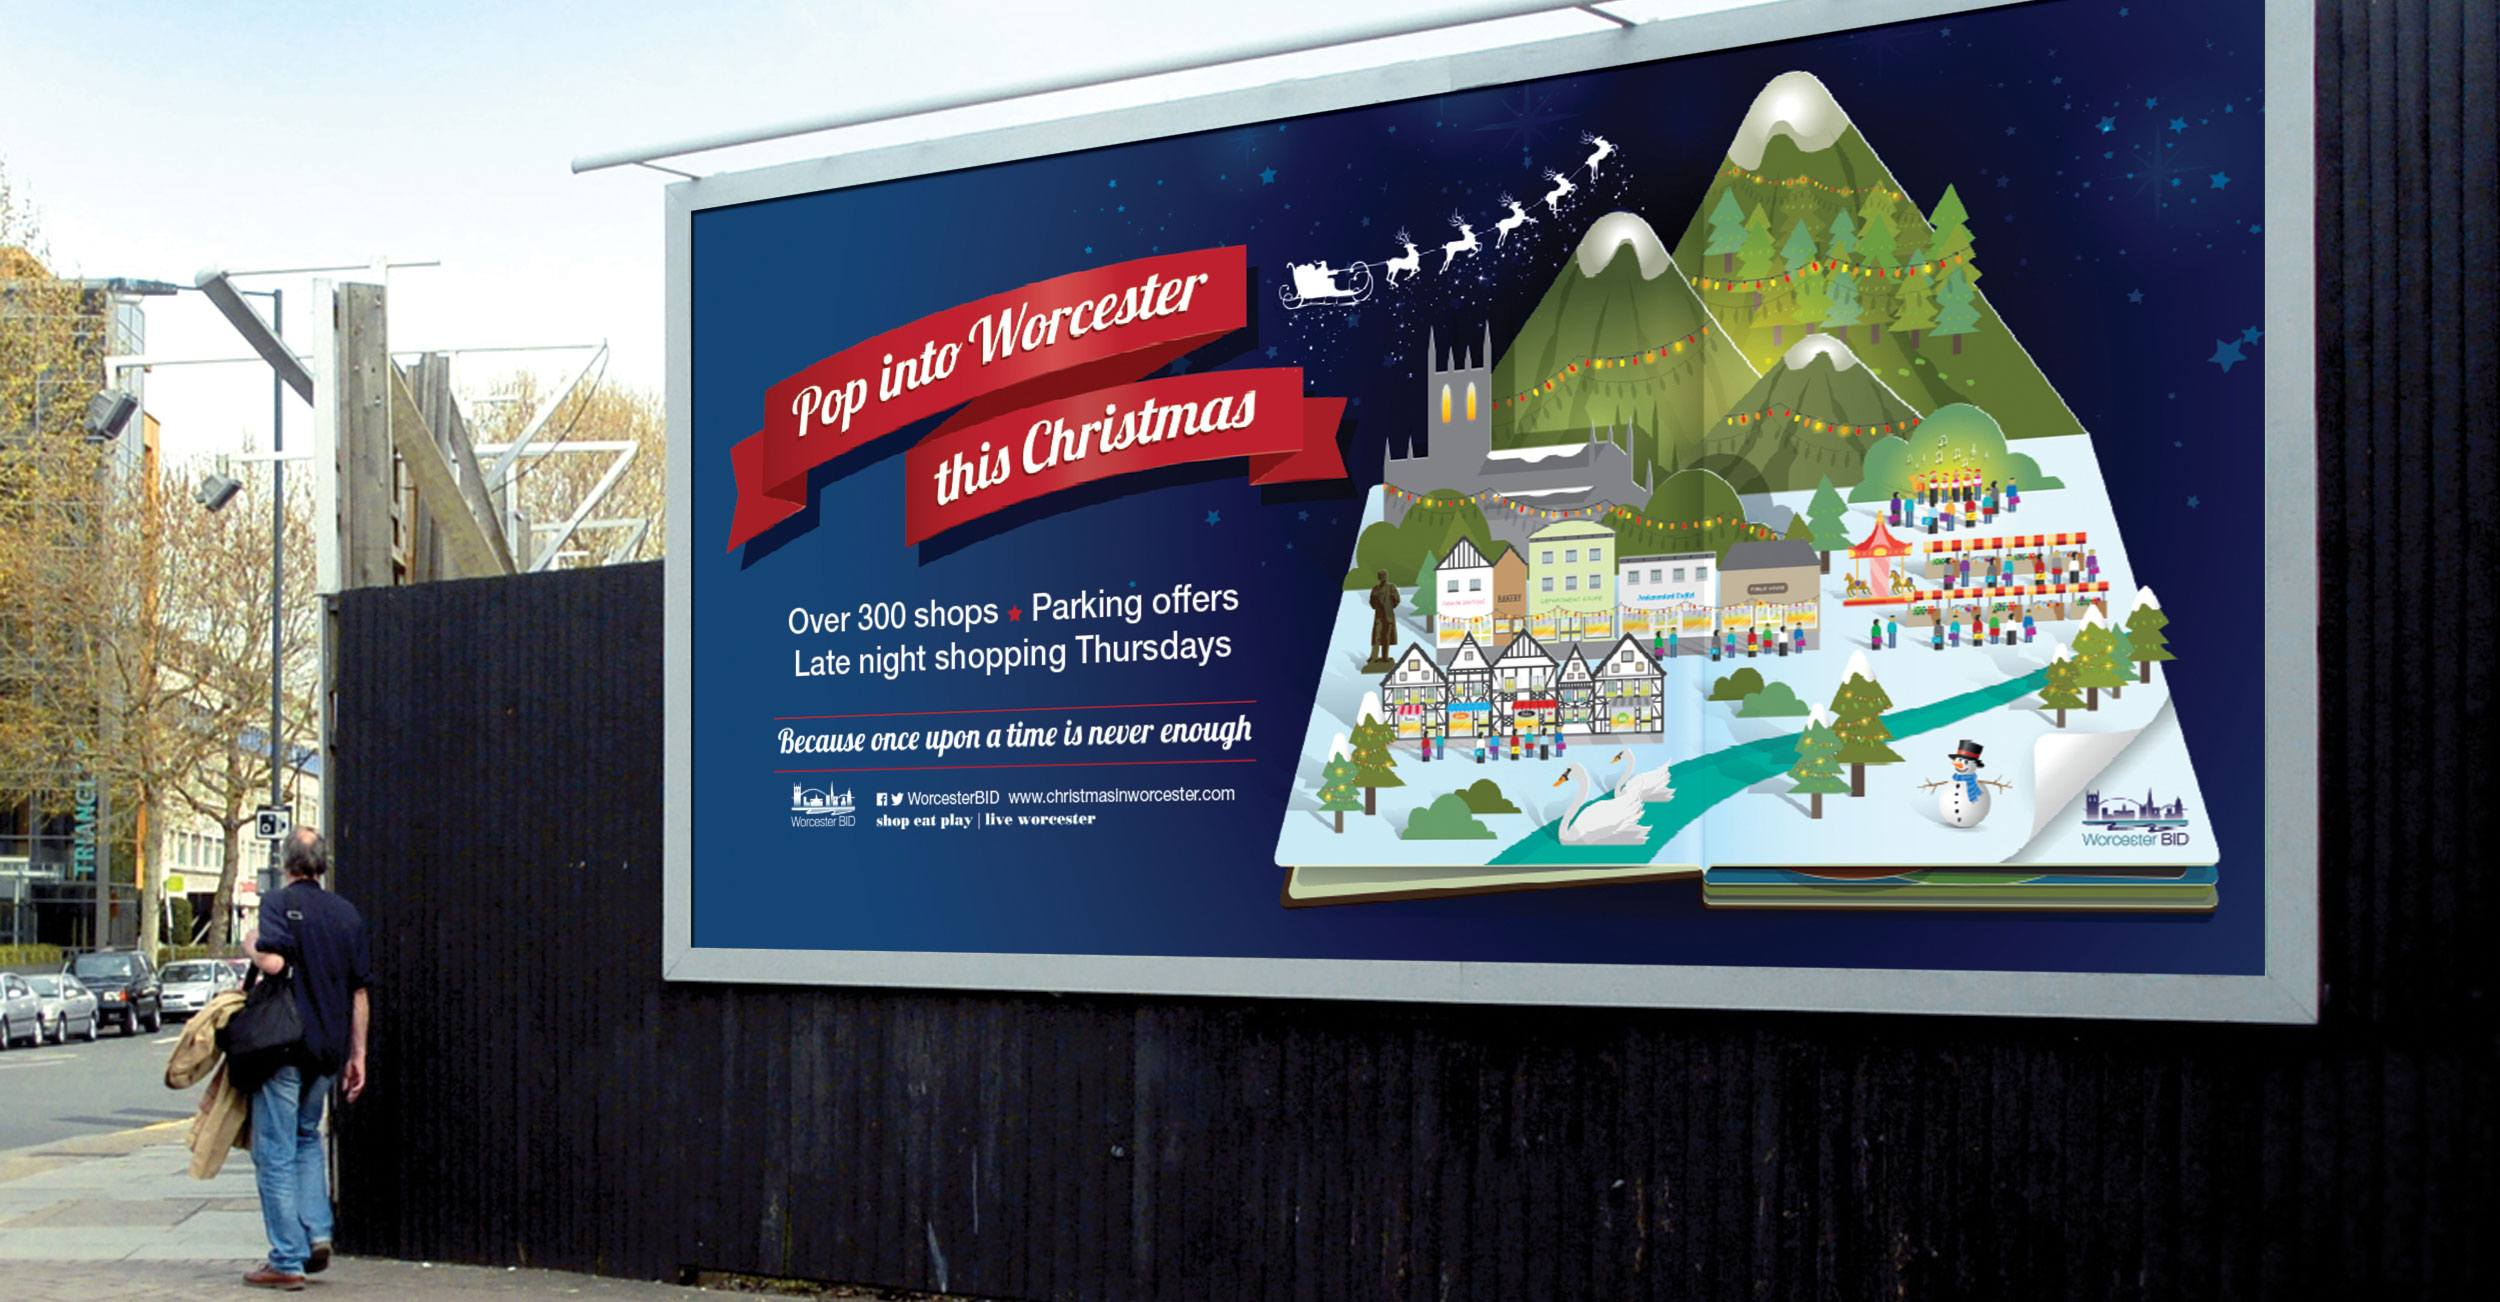 Worcester-Bid-Pop-into-worcester-this-christmas